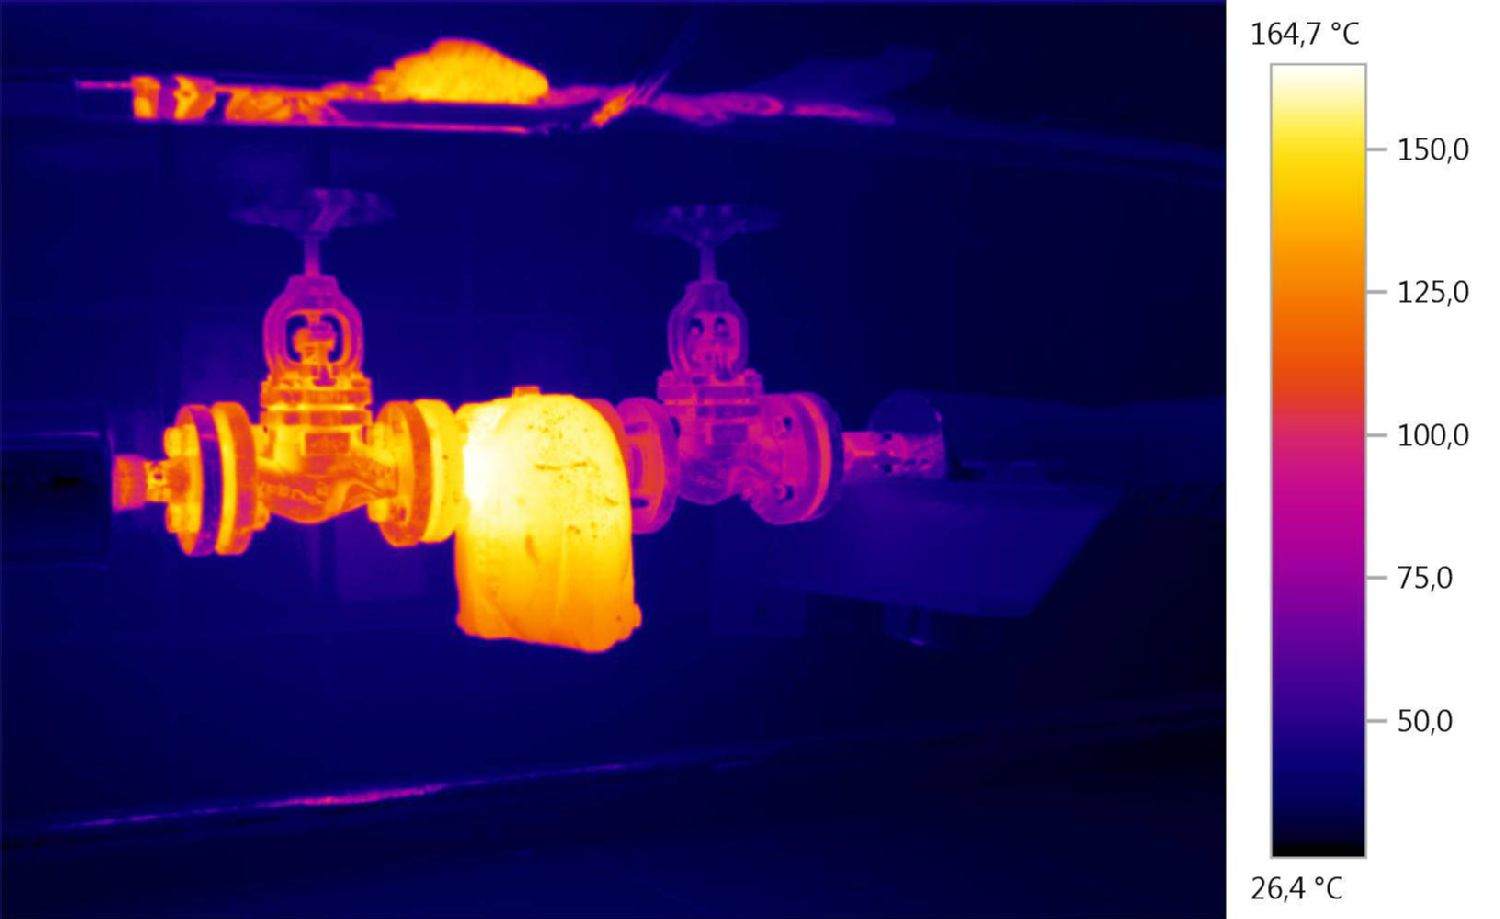 Thermal image technical systems